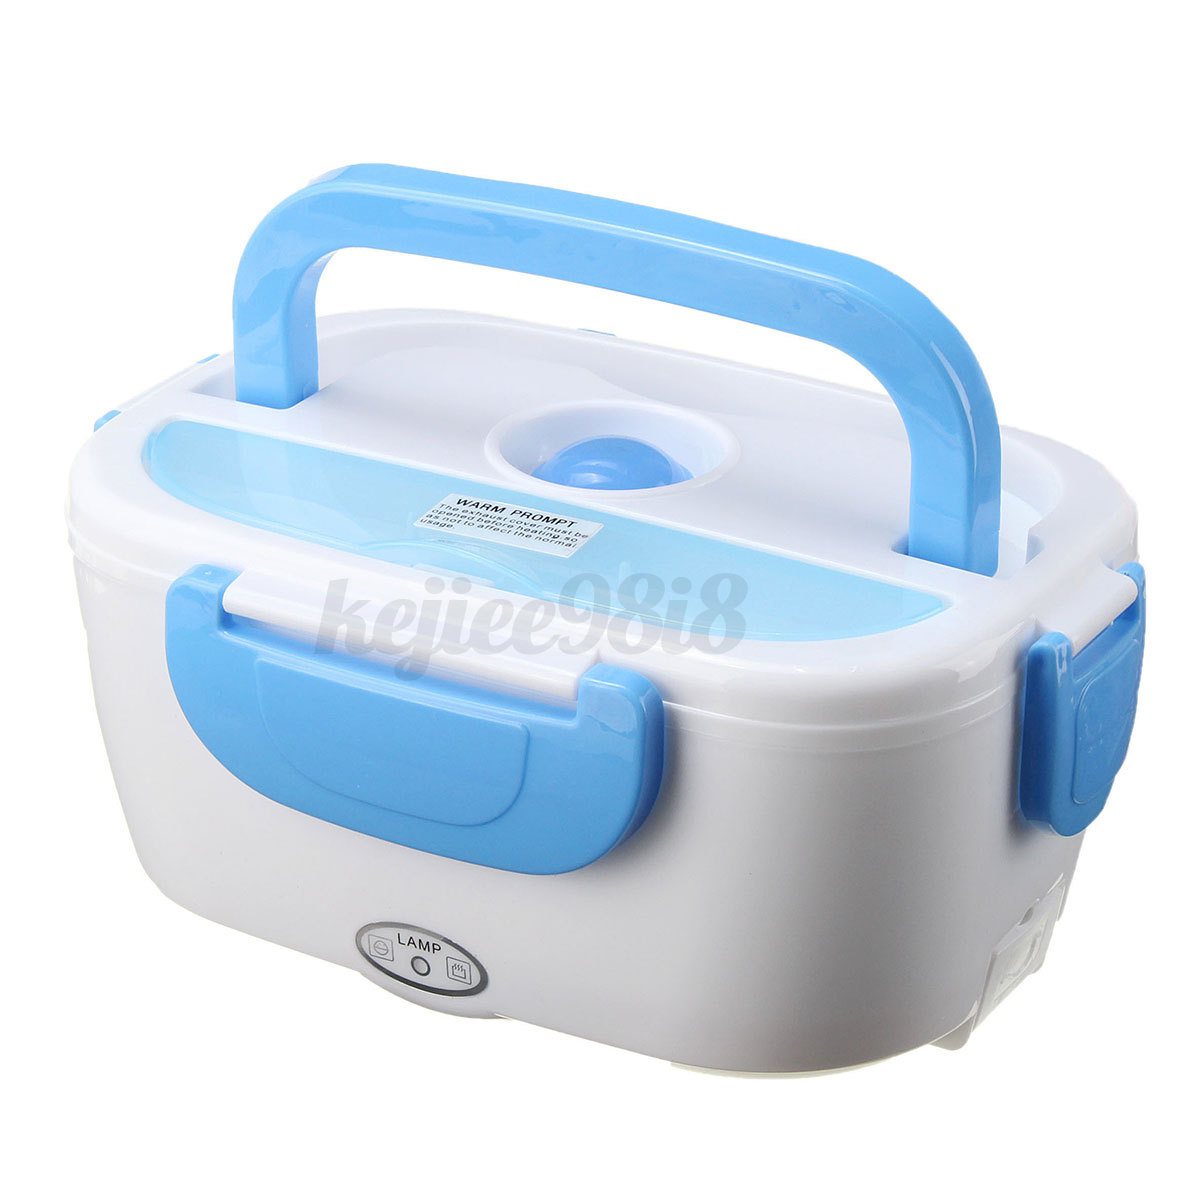 portable 12v car plug heating lunch box electric heated bento food warmer 1 0. Black Bedroom Furniture Sets. Home Design Ideas